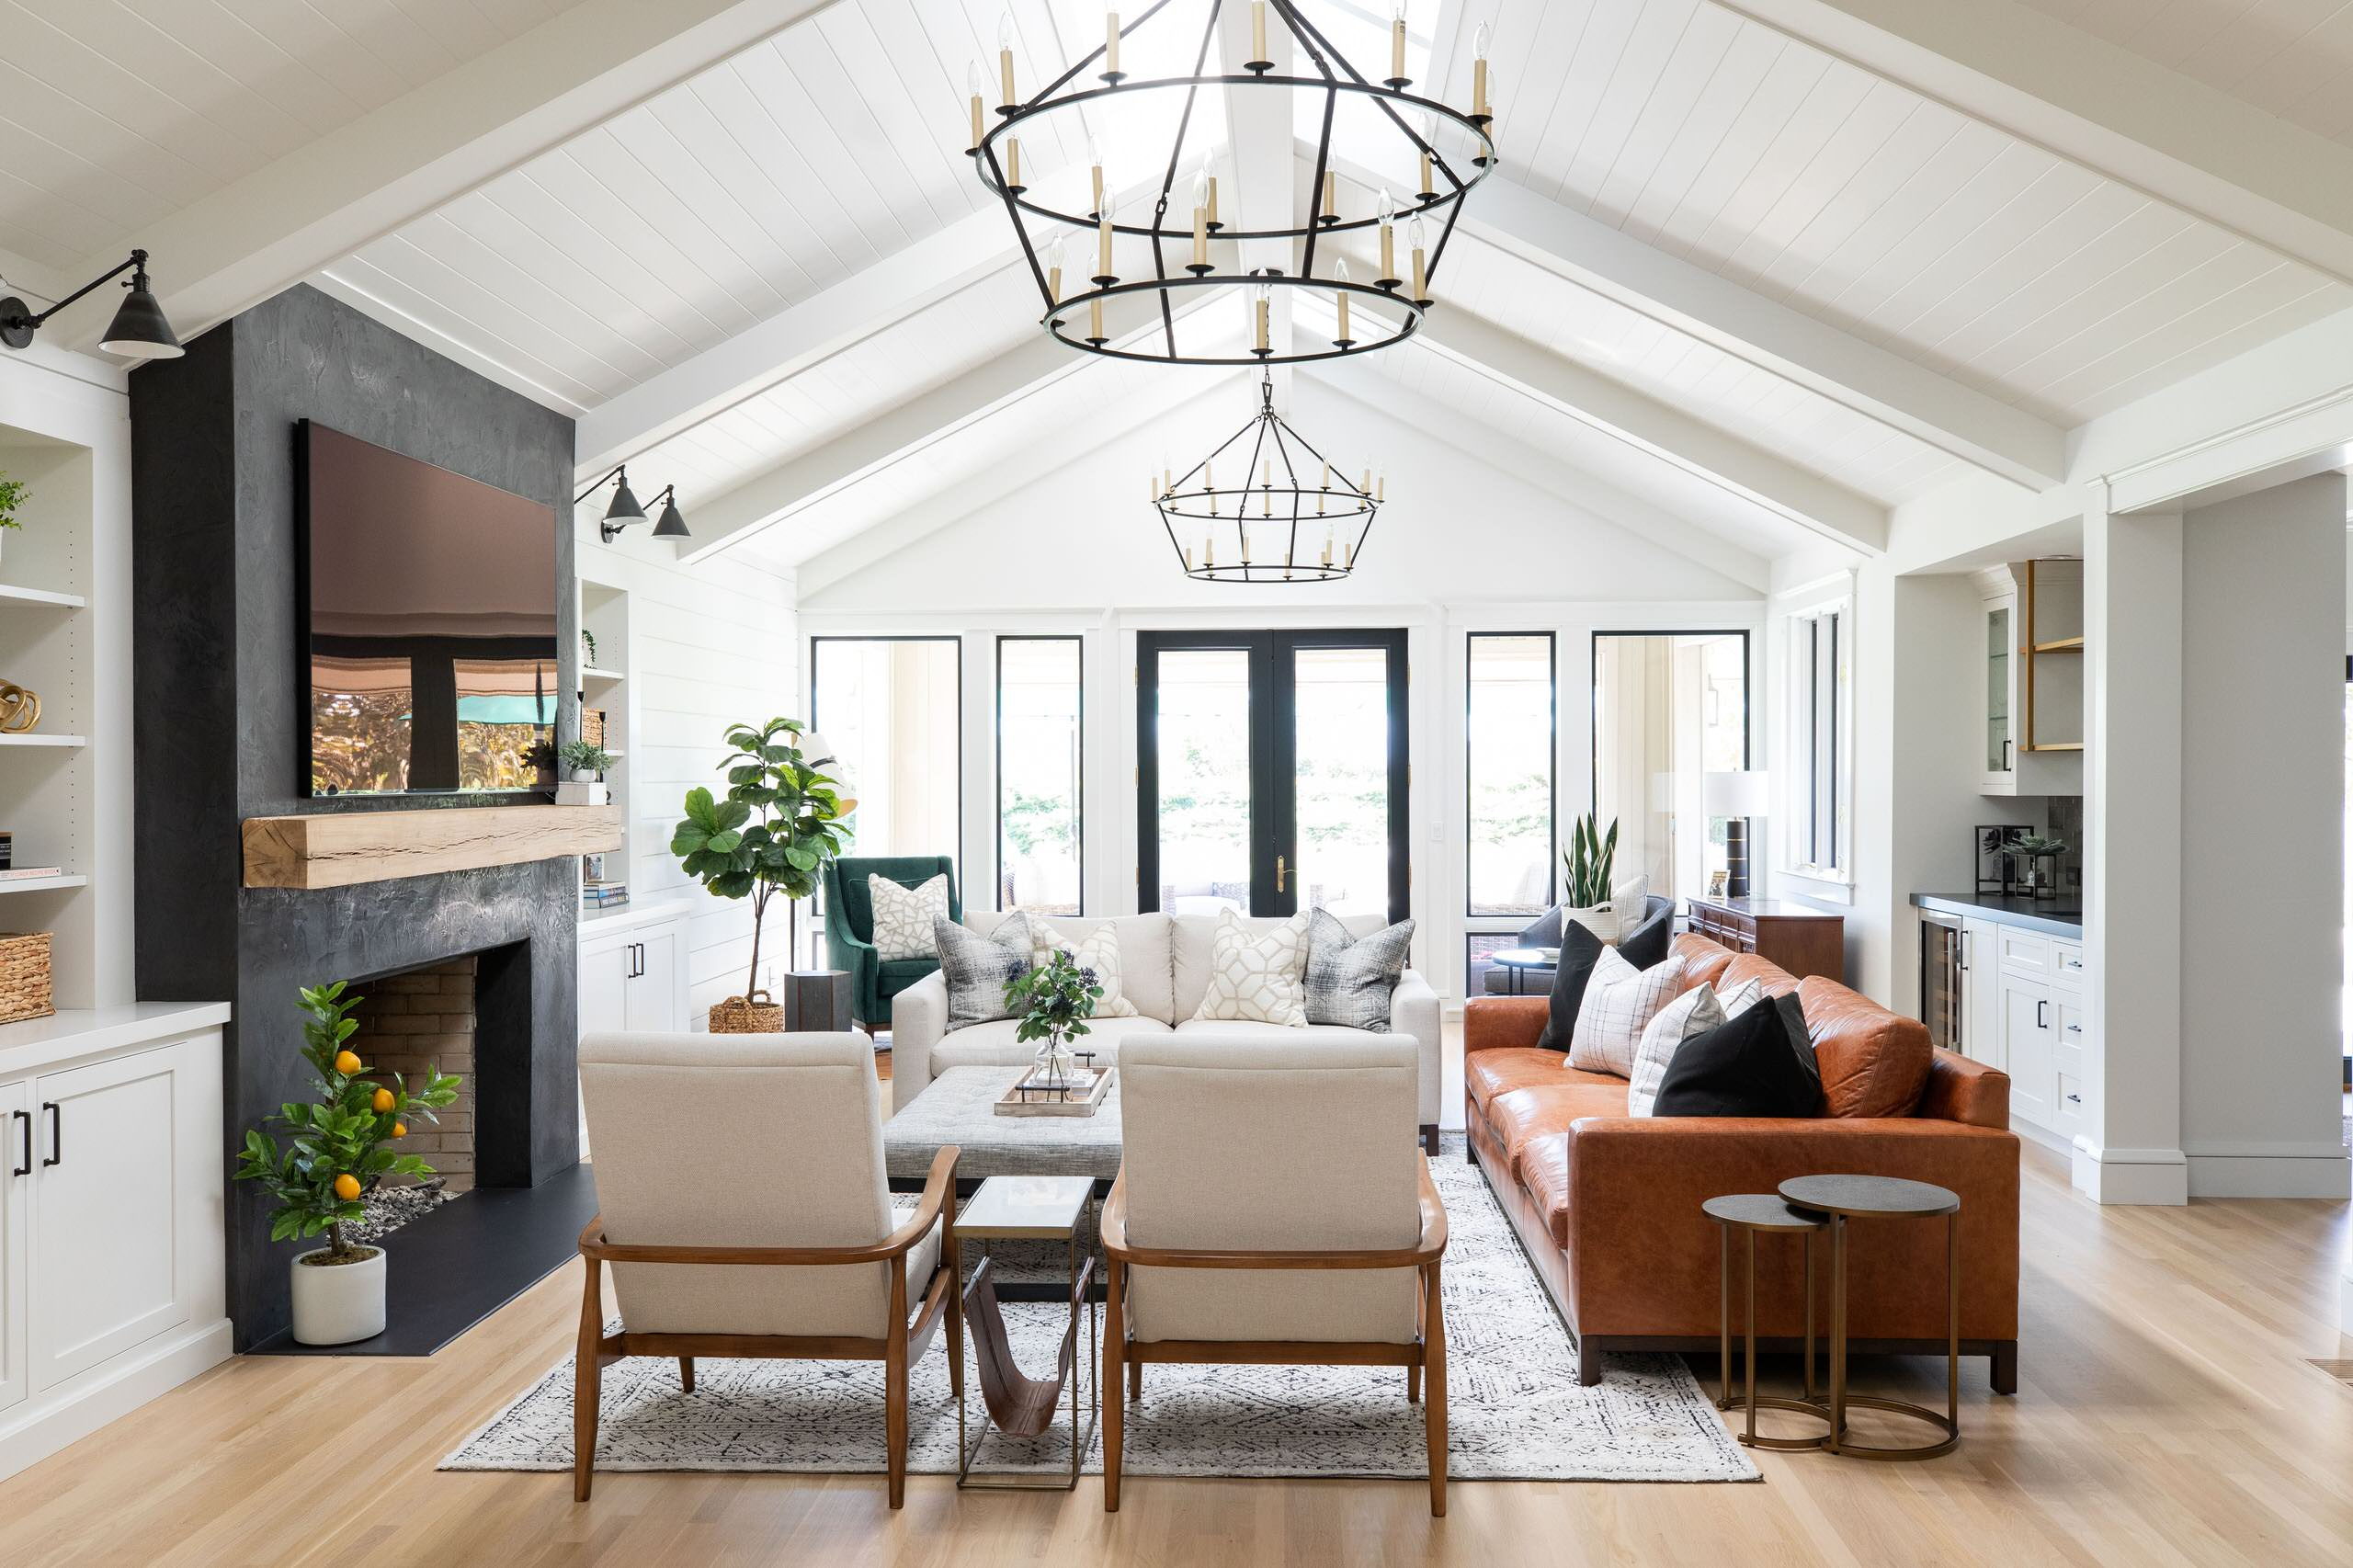 75 Beautiful Farmhouse Family Room Pictures Ideas February 2021 Houzz